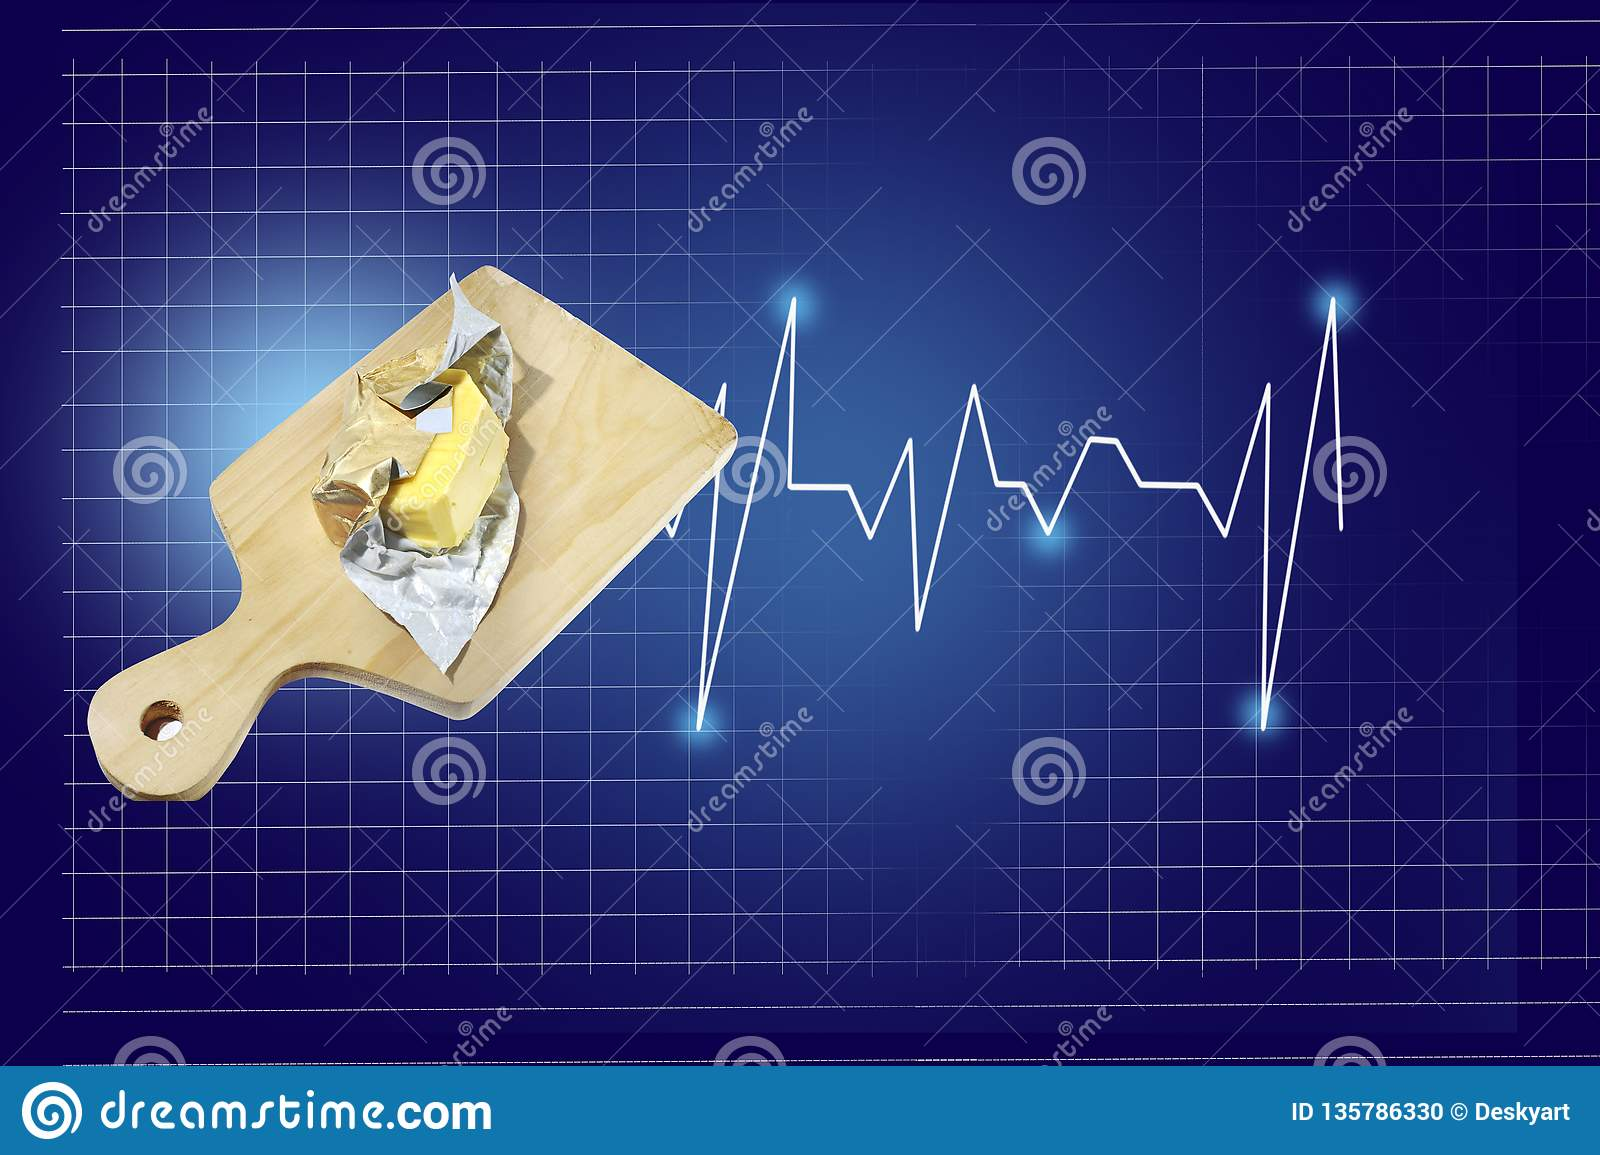 Butter on a wooden board with a heart beat rate chart info and healthcare report, isolated on blue background with checkered lines